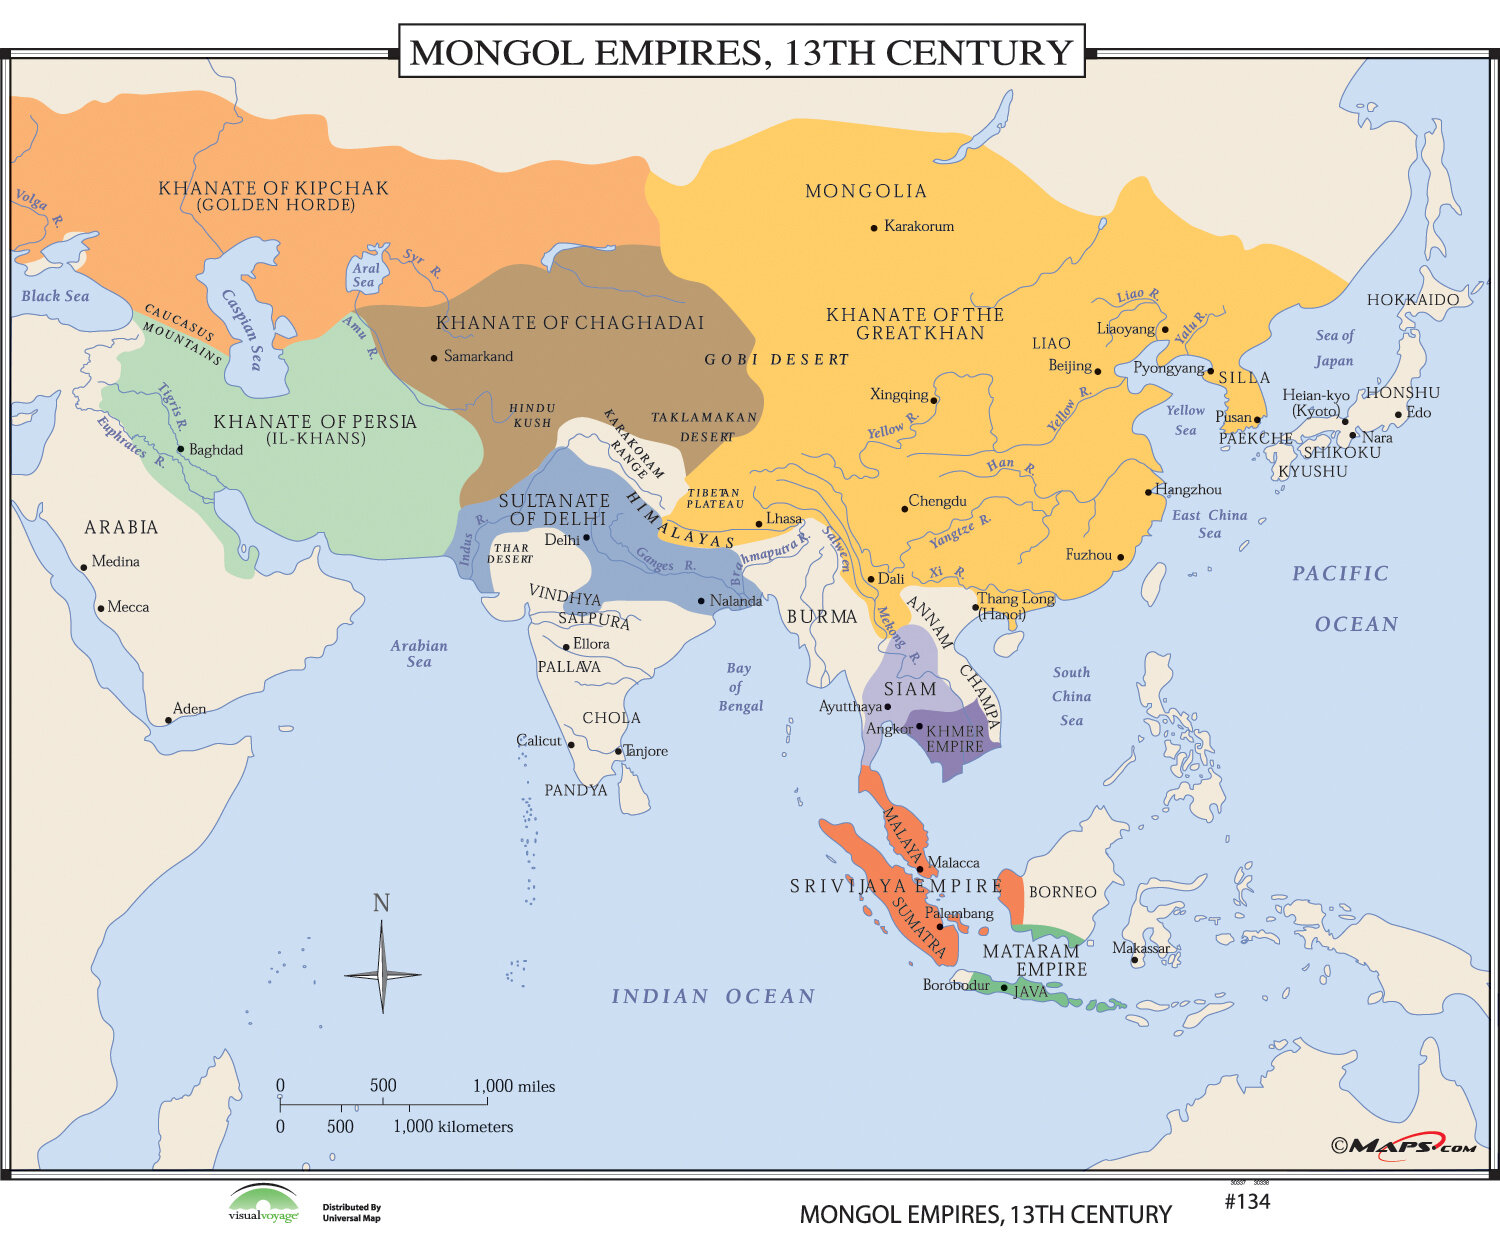 World History Wall Maps - Mongol Empires 13th Century on baghdad world map, mbanza world map, beijing world map, moscow world map, sarai world map, hangzhou world map, ulaanbaatar world map, kiev world map, samarkand world map, reykjavik world map, novgorod world map, angkor world map, malacca world map, kunlun world map, damascus world map, tangier world map, mogadishu world map, burma world map, java world map, japan world map,